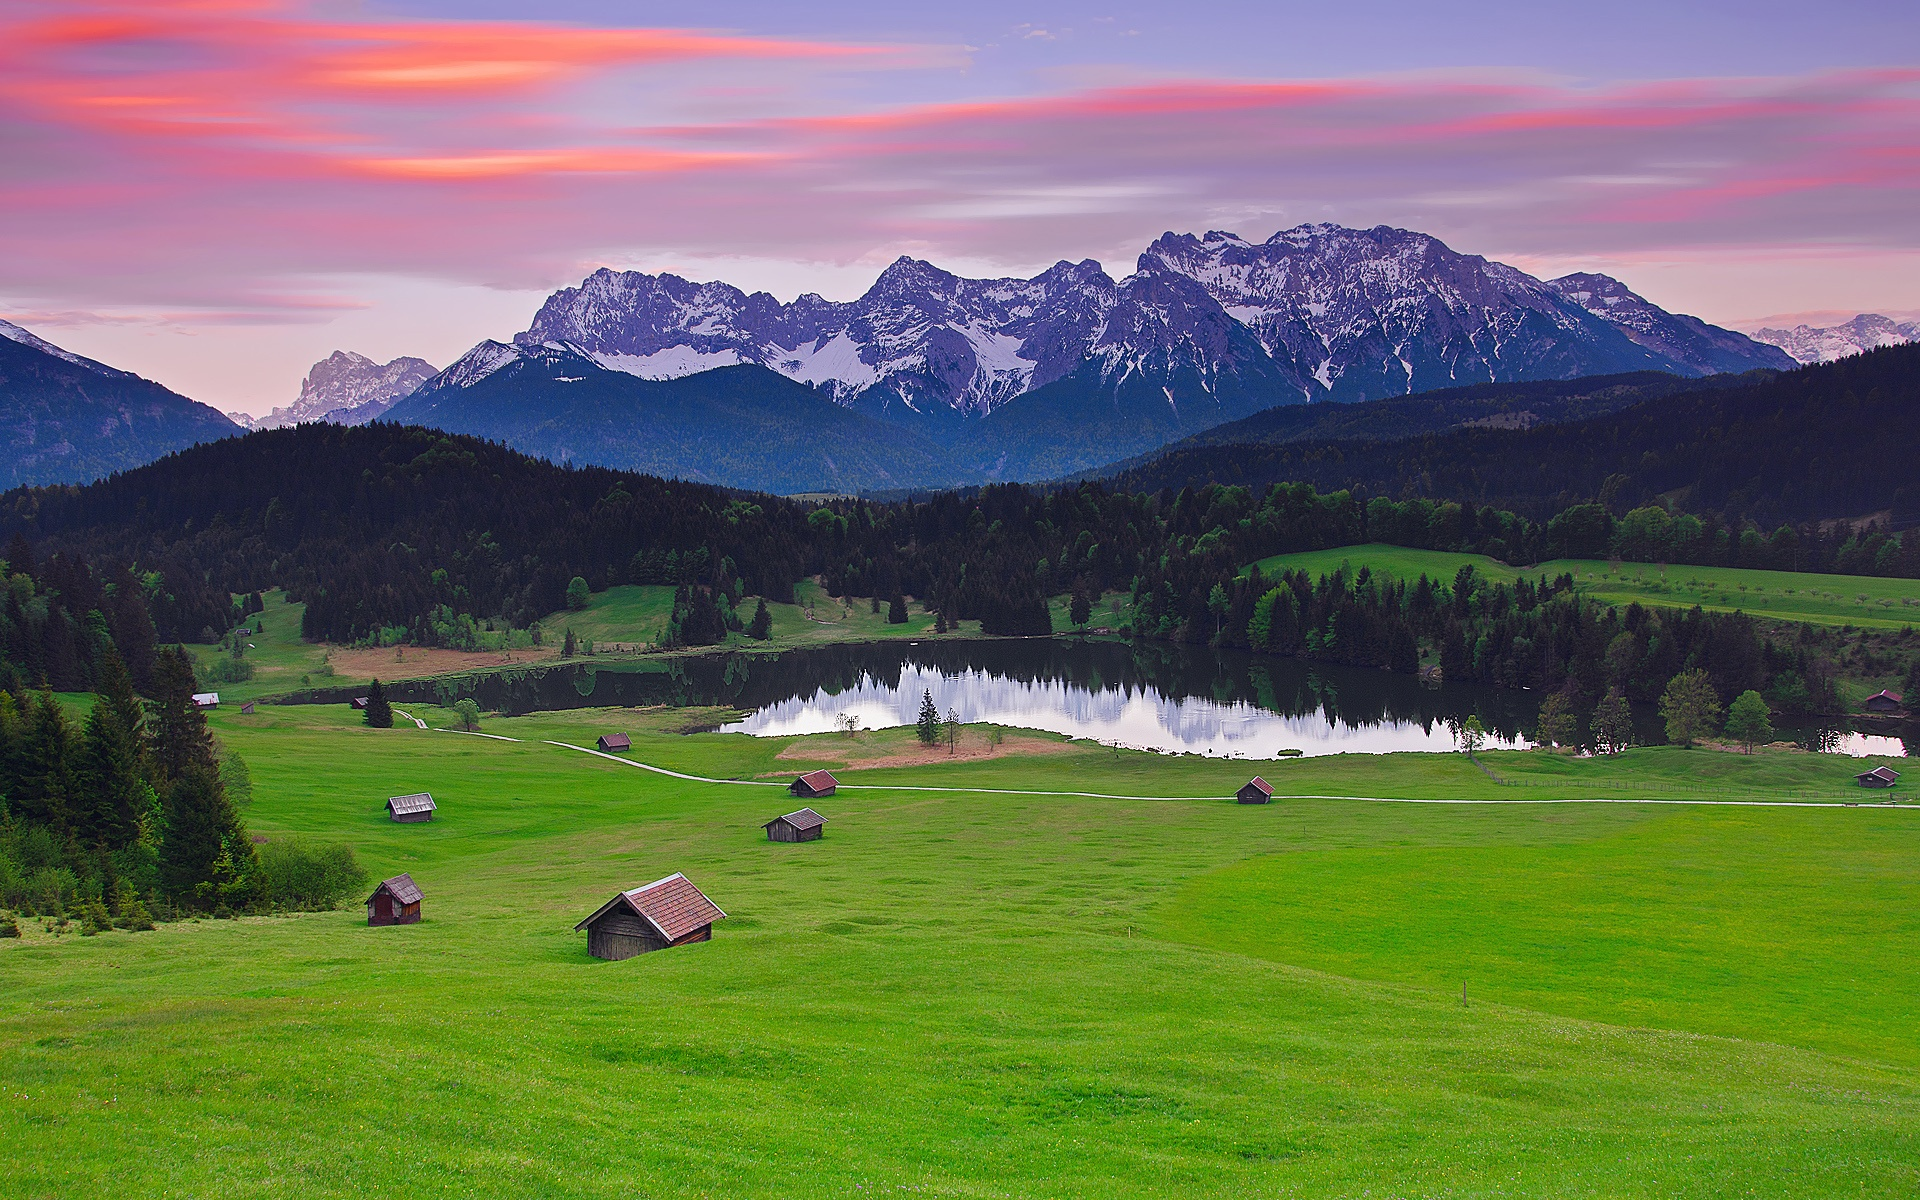 Bilder Landschaft 10 Travel Regions In Germany You Ought To Visit - Likibu